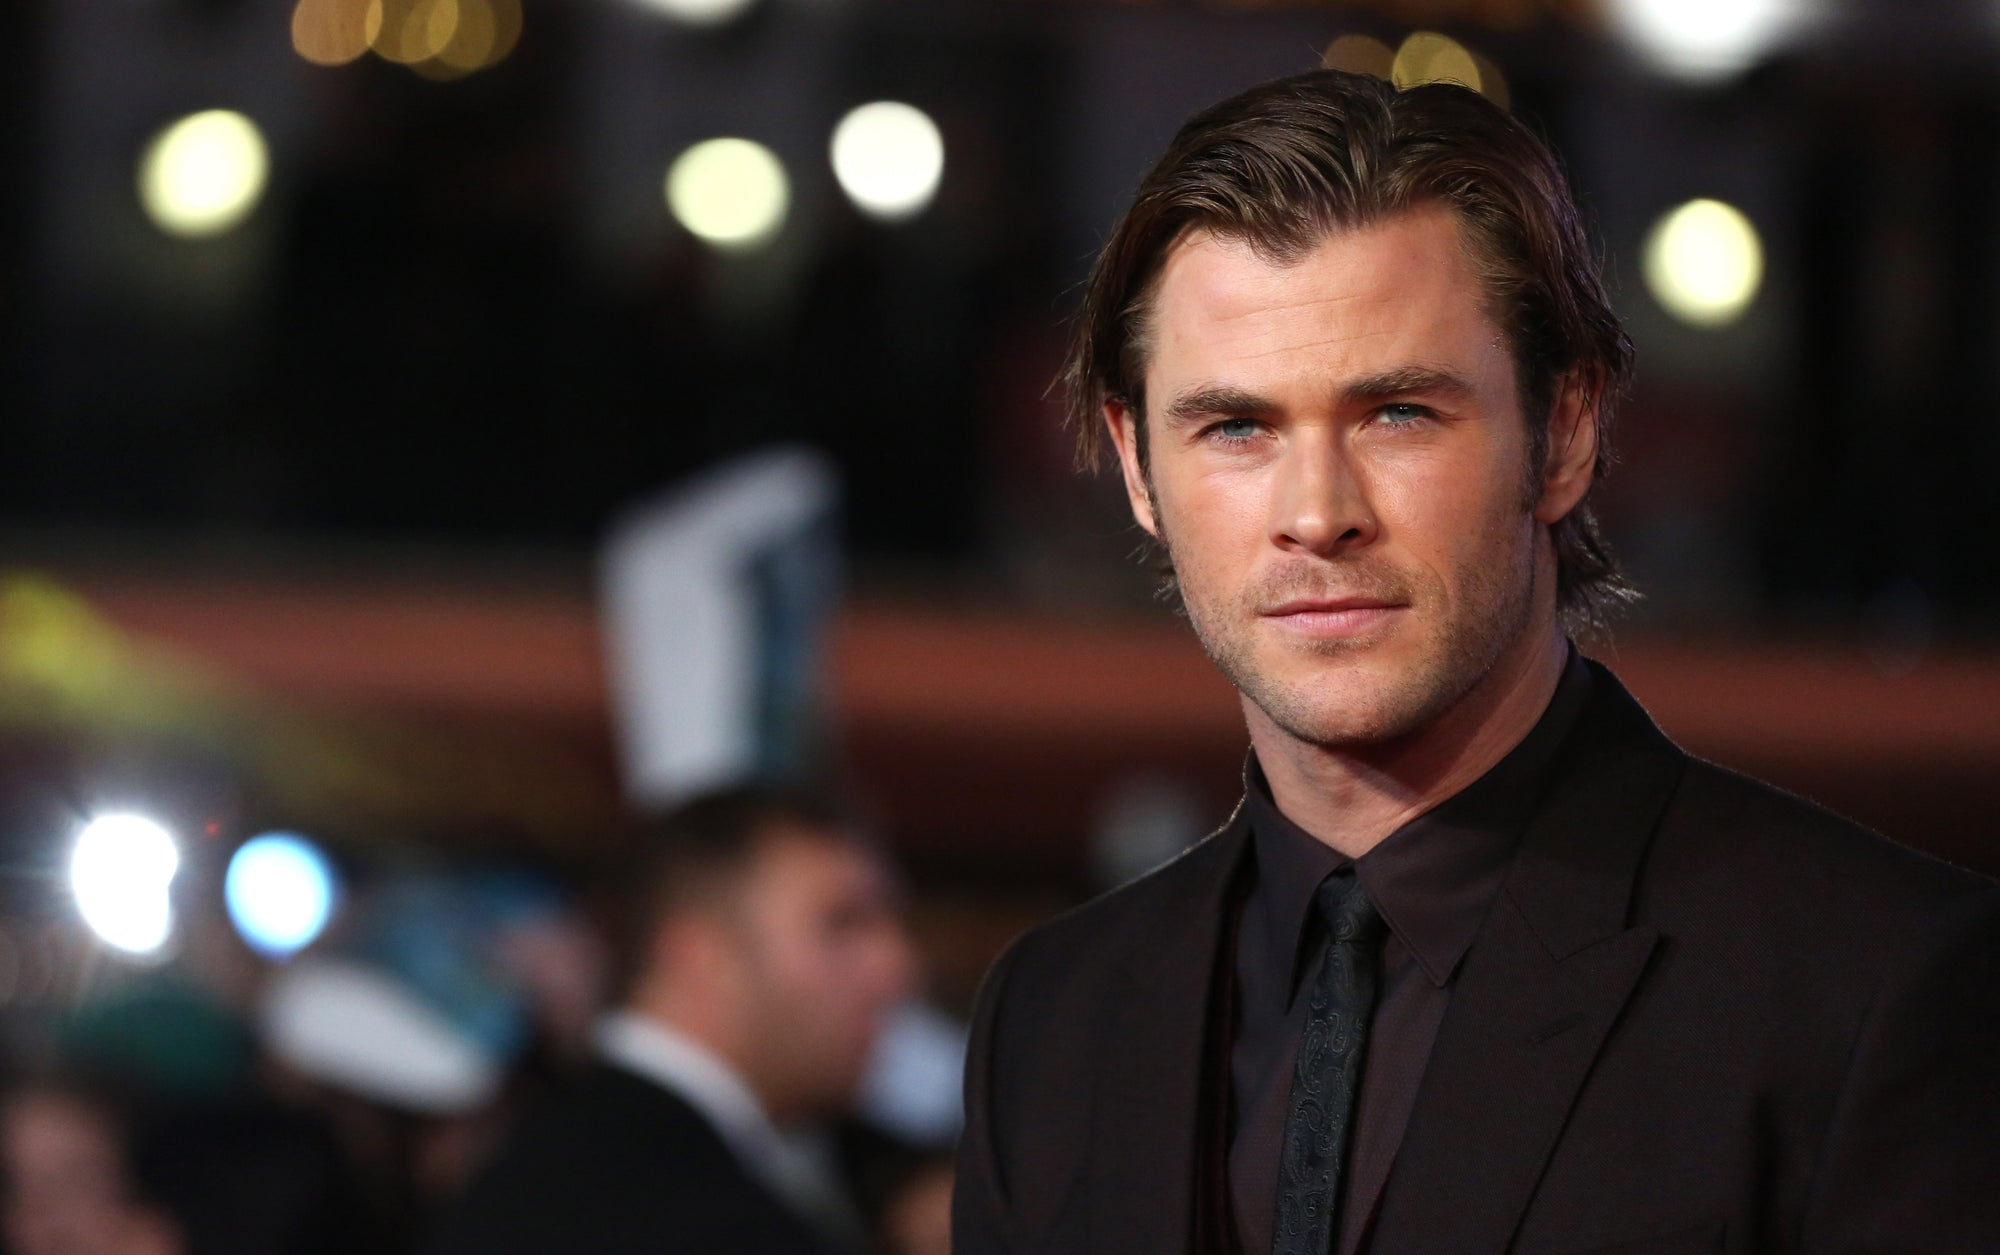 Chris Hemsworth's Thor Workout Routine: Train Like the Thunder God